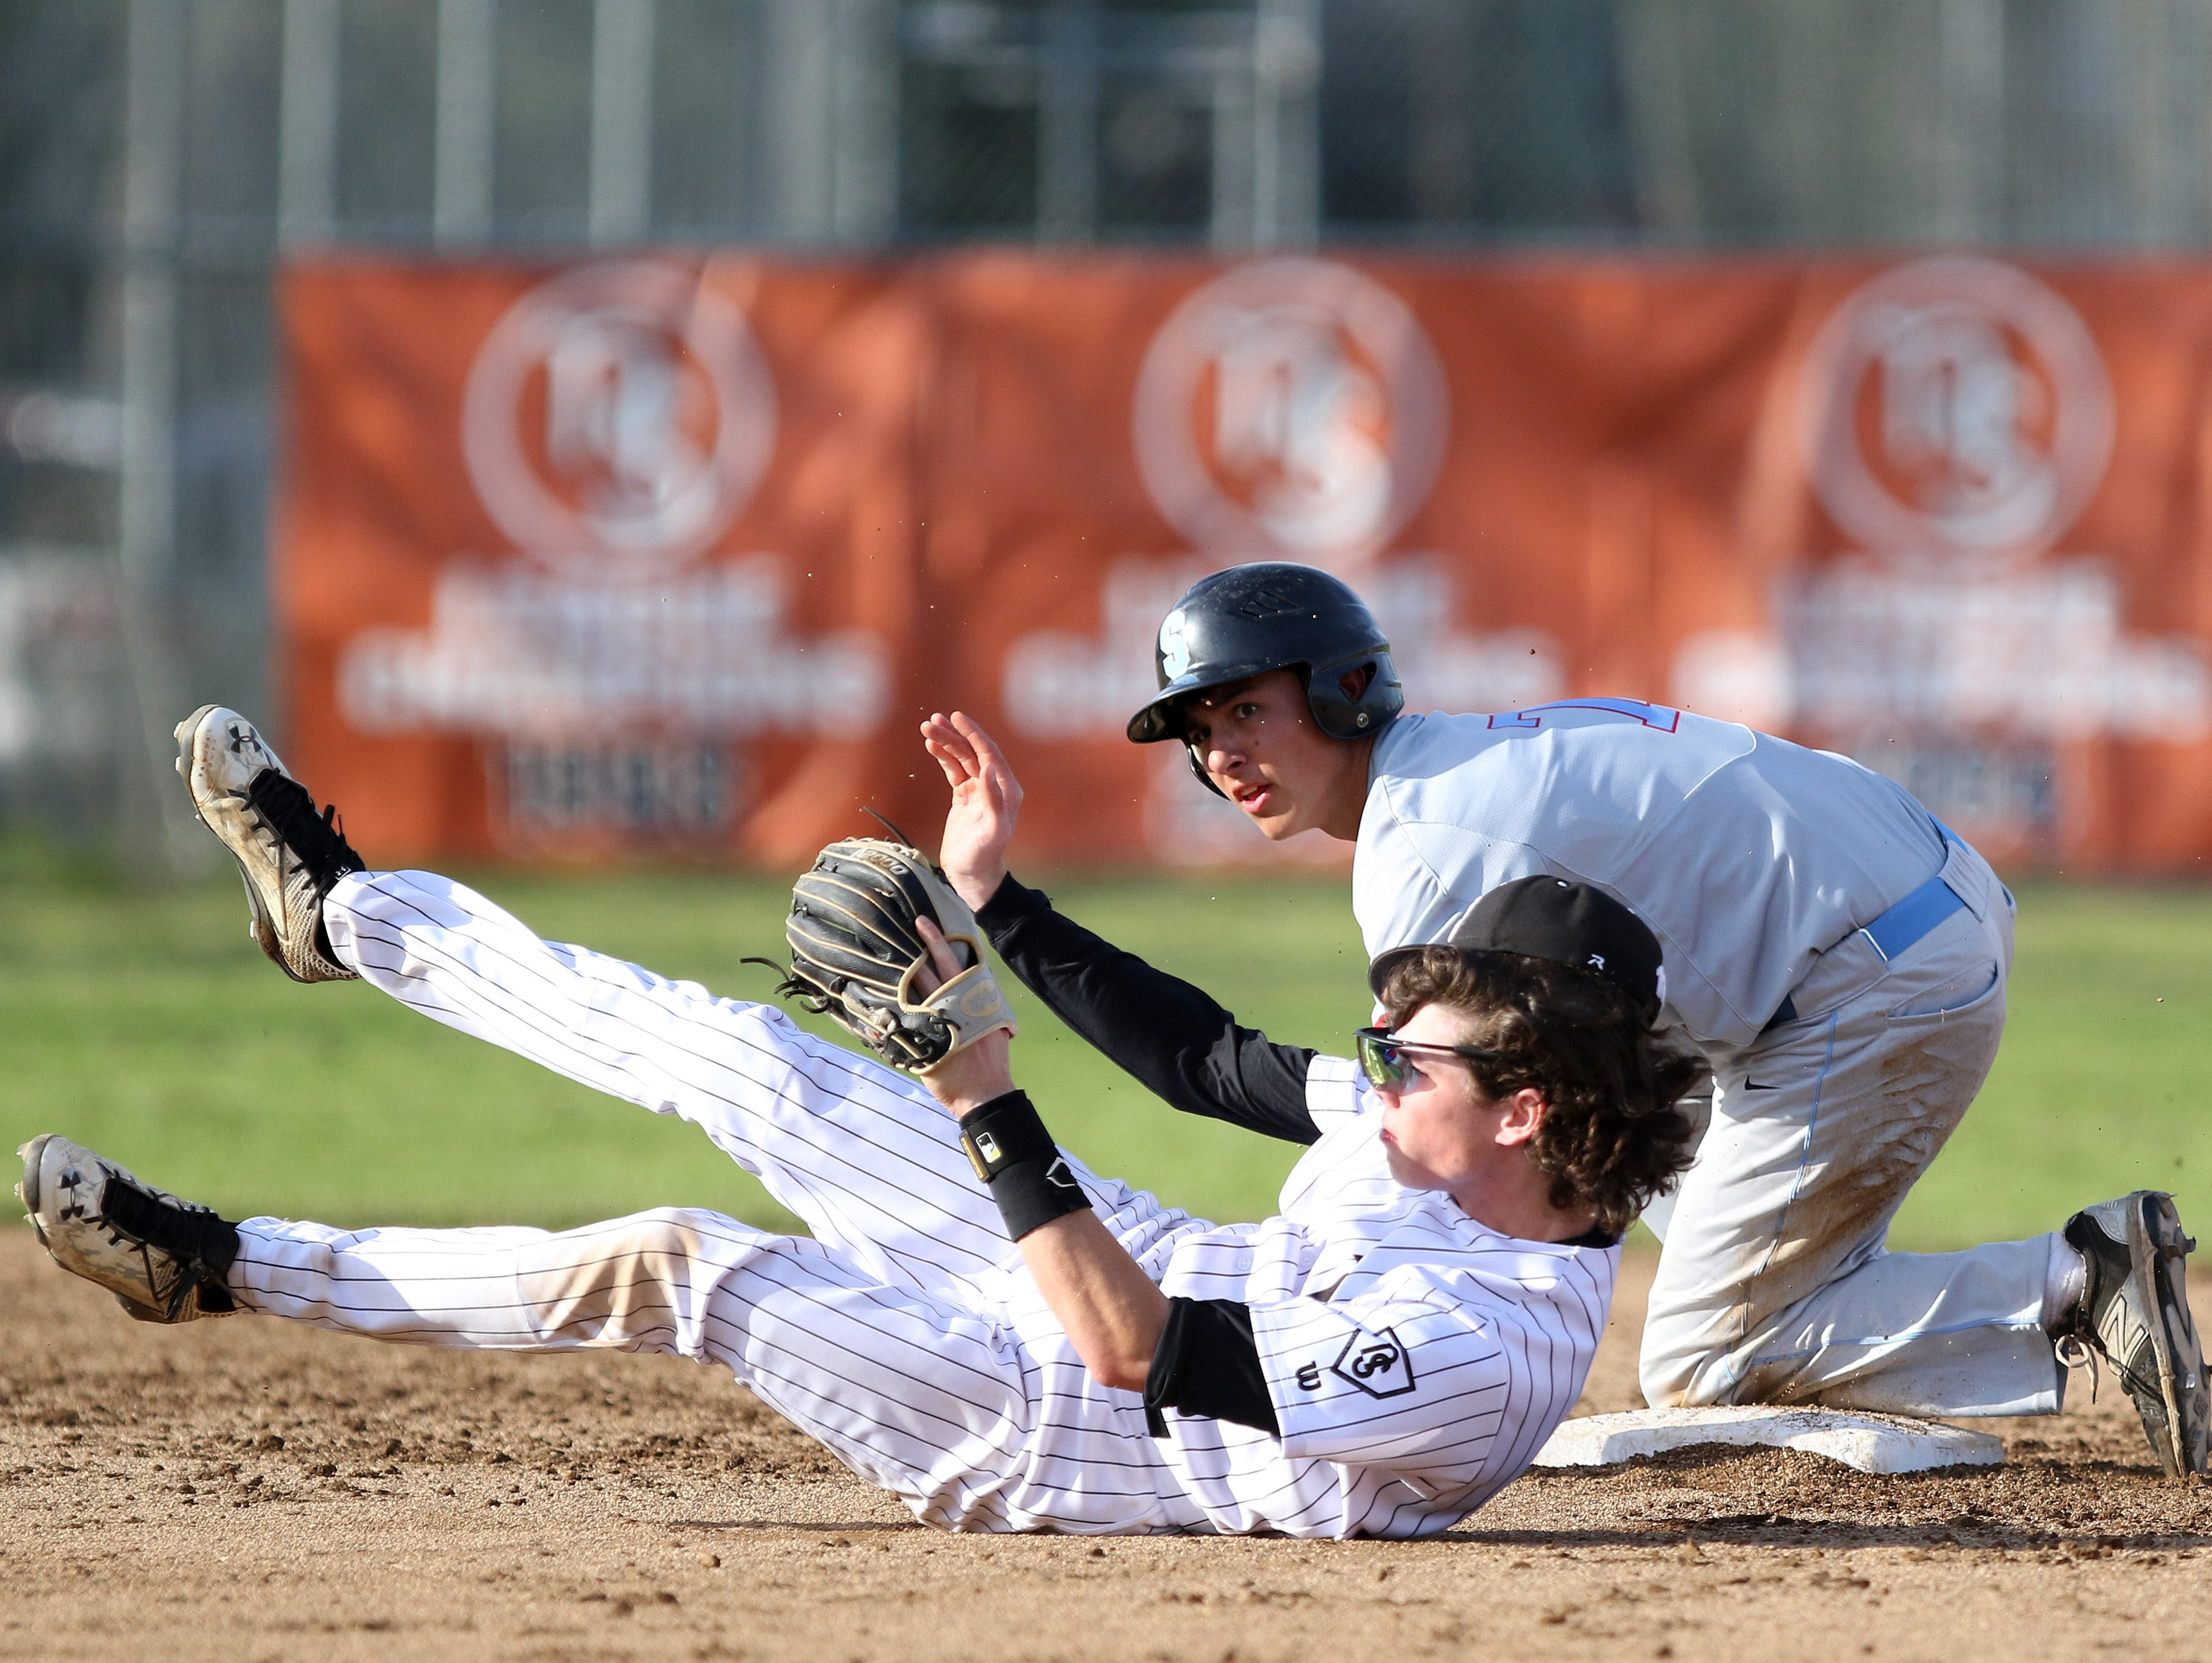 South Salem's Aaron Zavala collides with North Salem's Noah Boatwright at second base as the Saxons defeat North Salem 8-1 on Friday, April 8, 2016, during a Greater Valley Conference game.